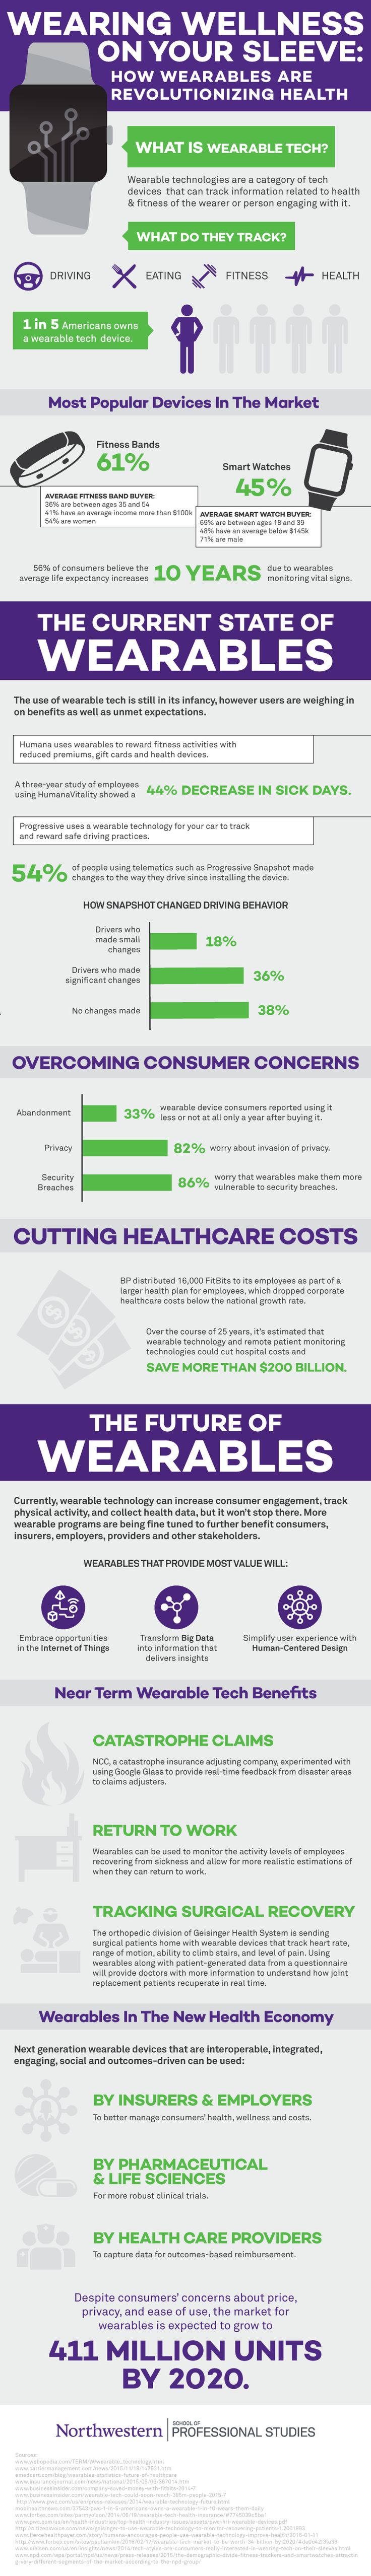 Wearing Wellness on your Sleeve: How Wearables Are Revolutionizing Healthcare…